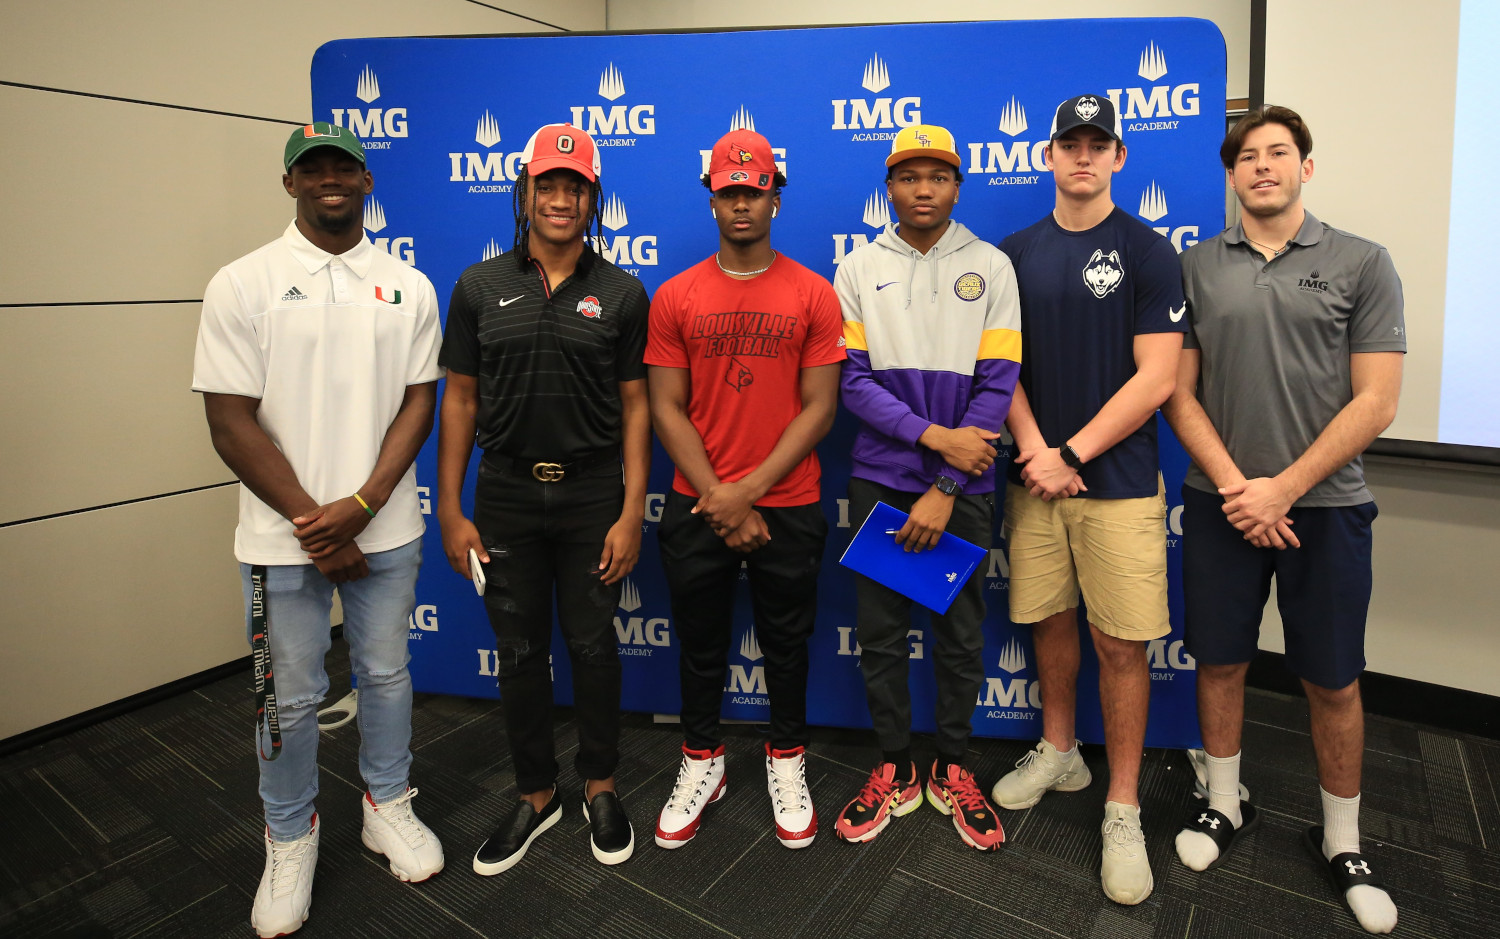 img football players at signing day ceremony | IMGAcademy.com